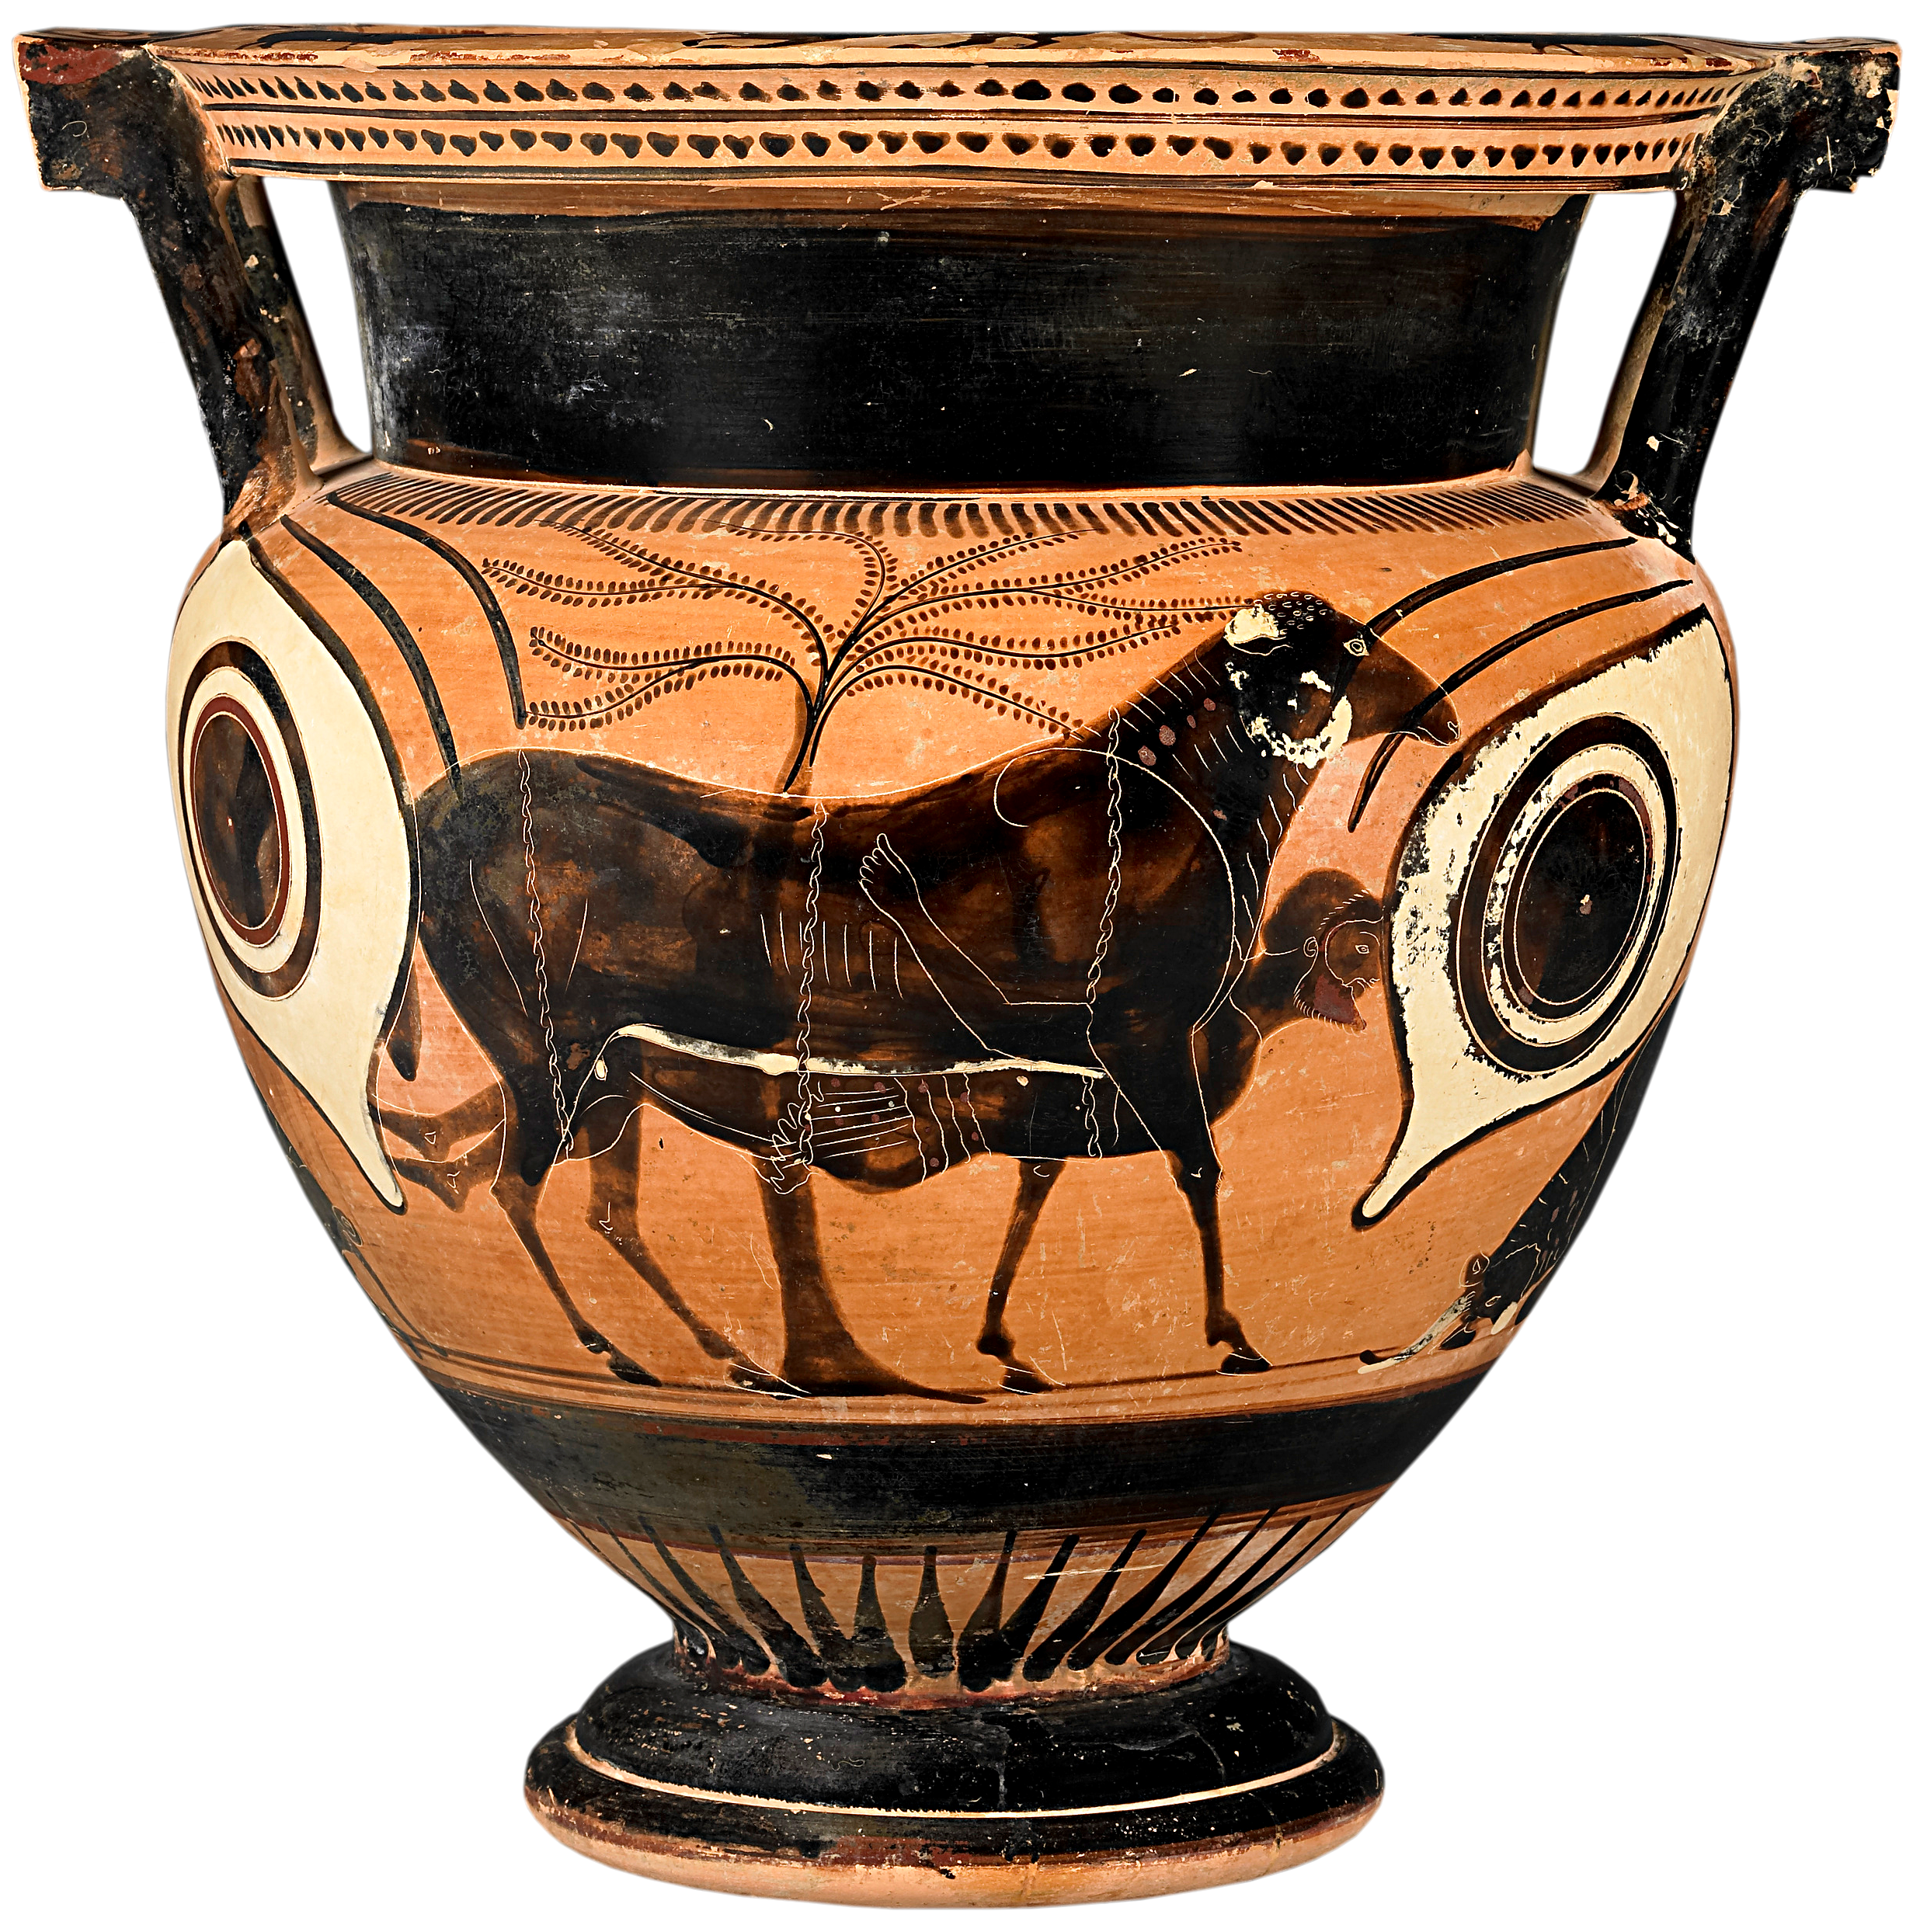 Attic Black-Figure Column Krater depicting Odysseus escaping underneath a ram. Source Wikimedia  sc 1 st  THE SHIELD OF ACHILLES & Odysseus Escapes the Cyclops Underneath a Ram u2013 THE SHIELD OF ACHILLES